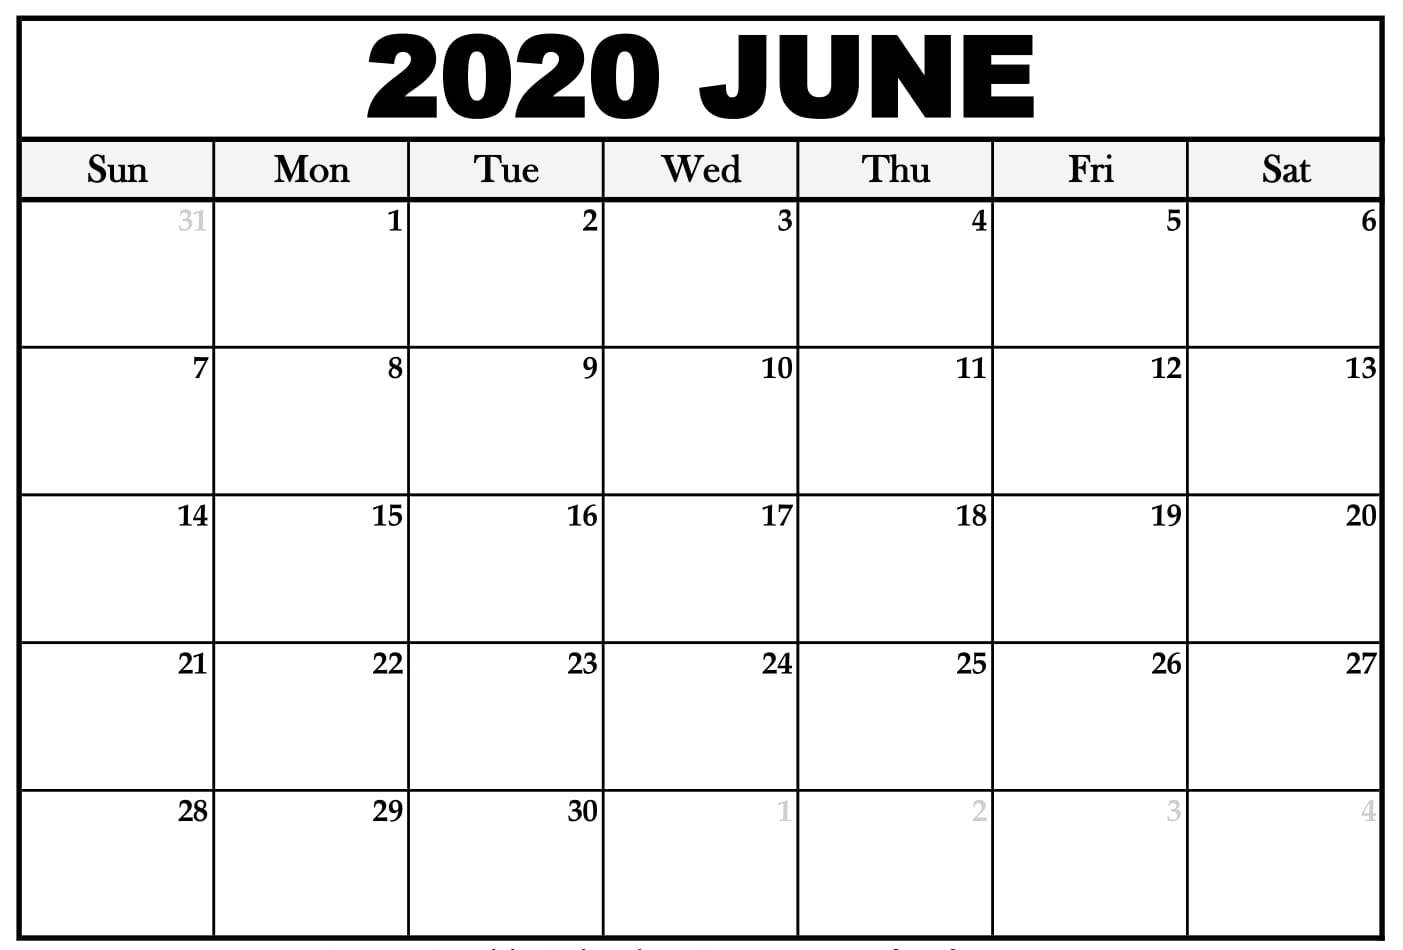 June 2020 Calendar Printable Template